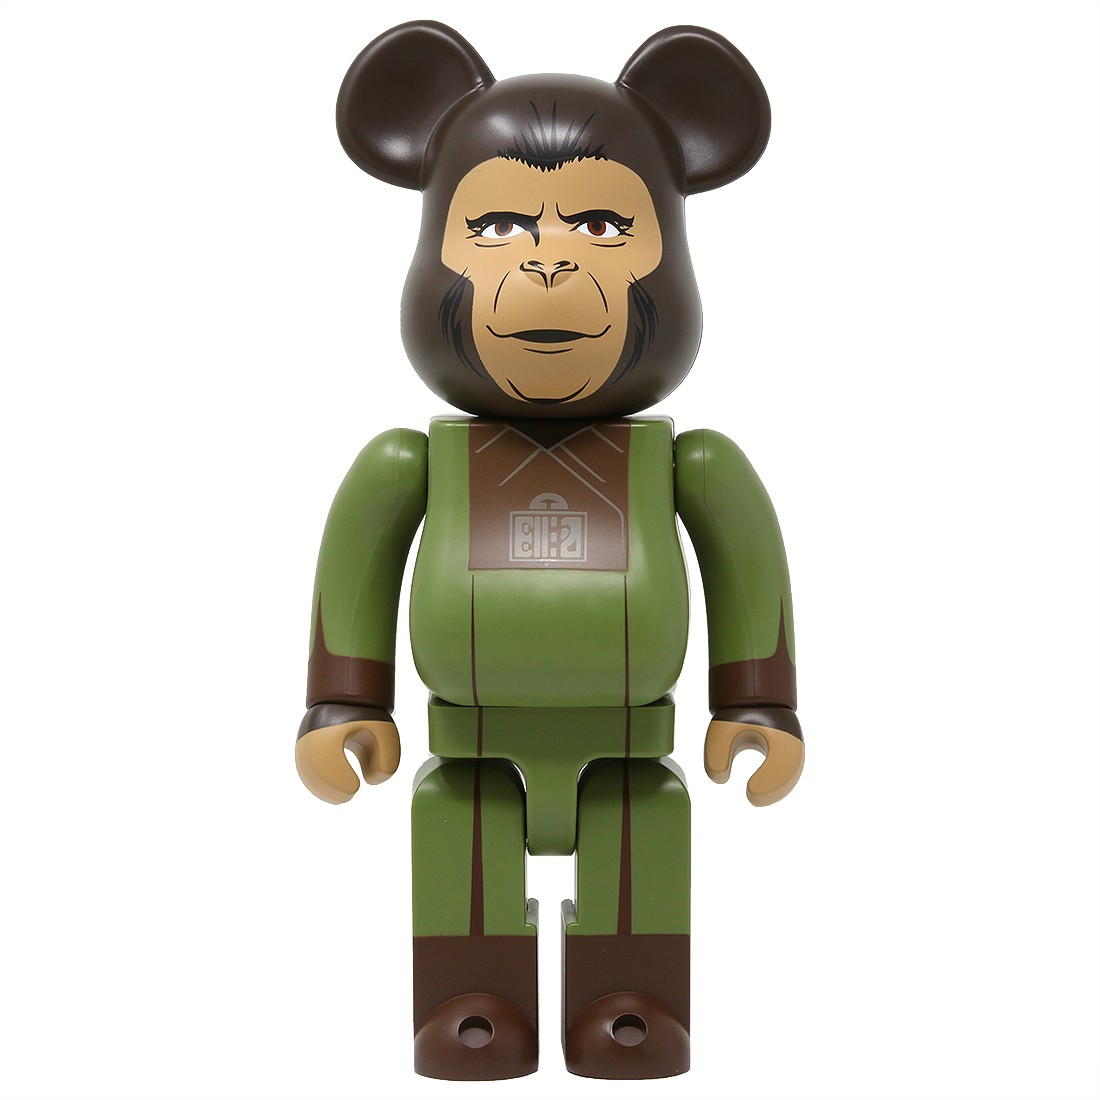 Medicom Planet Of The Apes Zira 400% Bearbrick Figure (green)